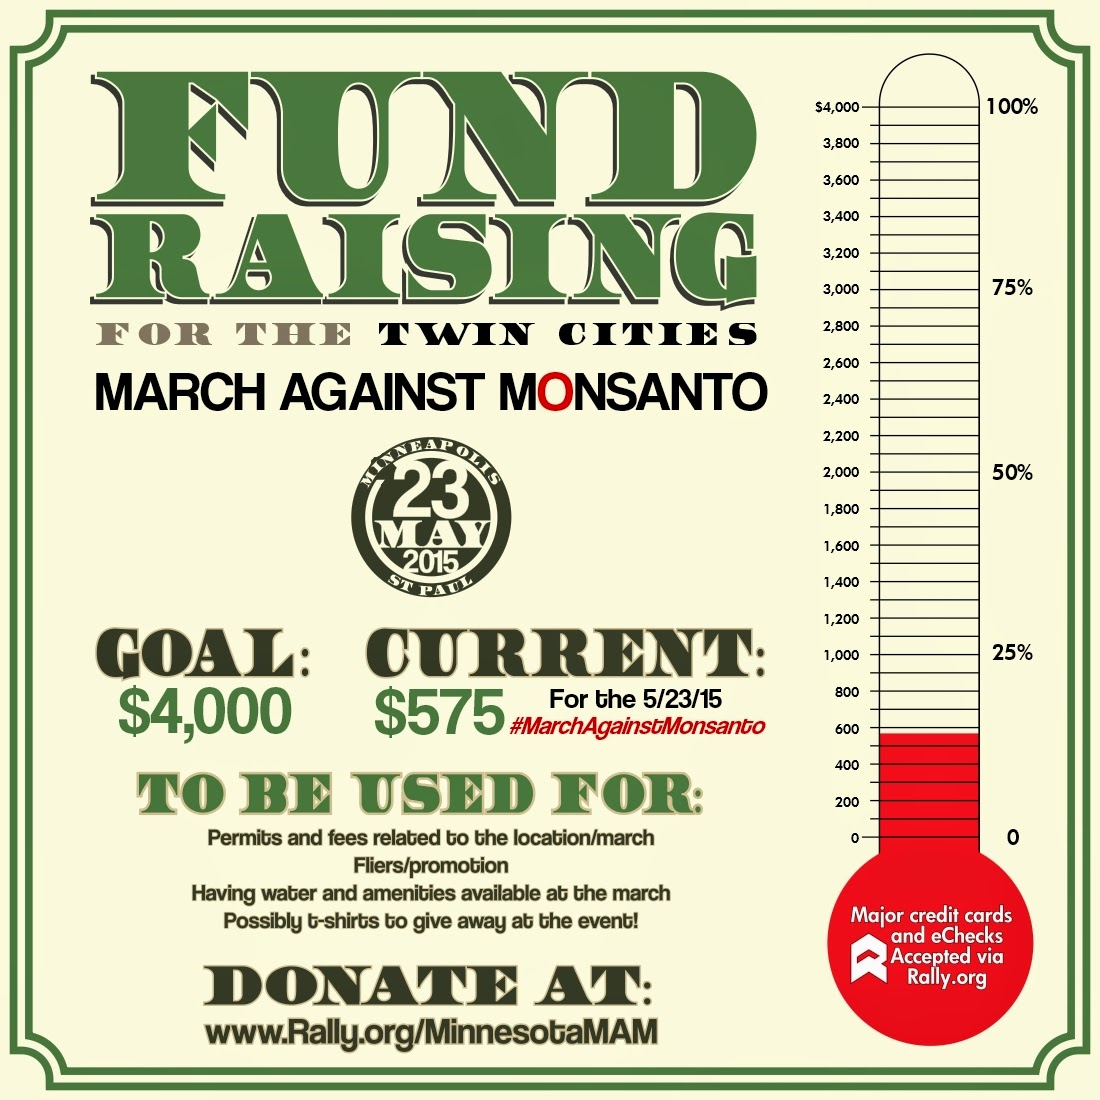 Fundraising for the 2015 Twin Cities #MarchAgainstMonsanto